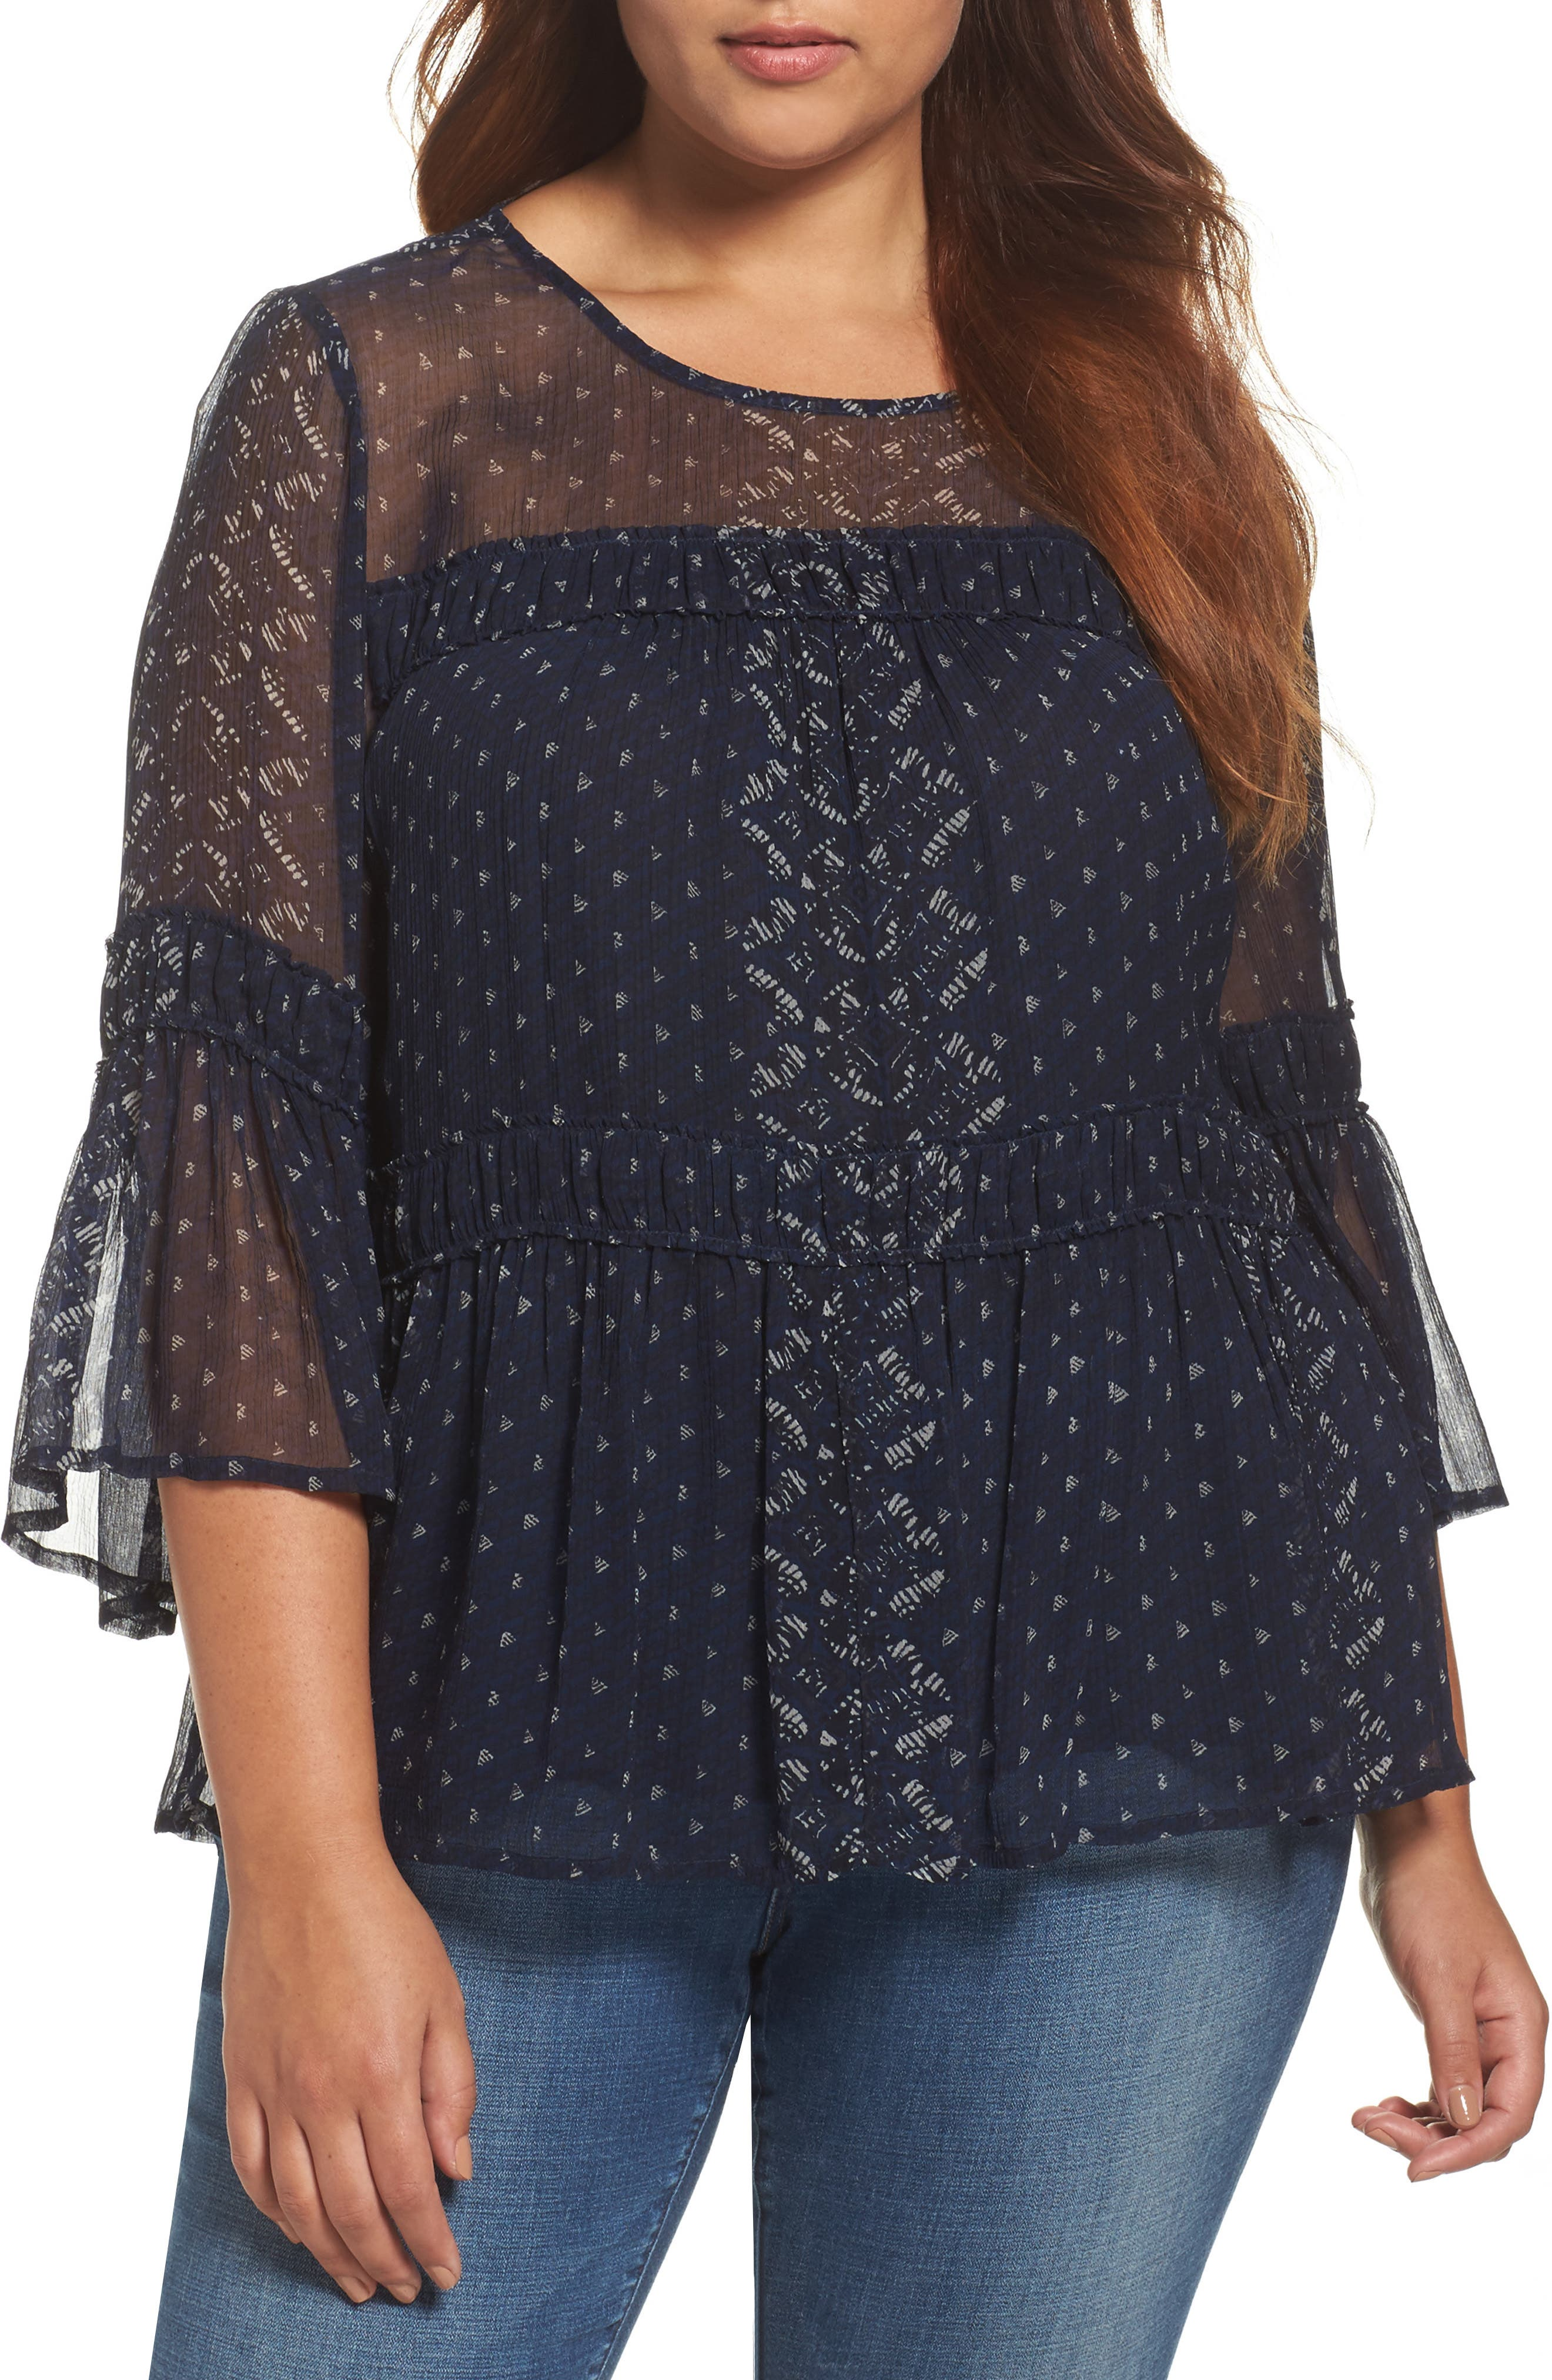 Alternate Image 1 Selected - Lucky Brand Shirred Peasant Top (Plus Size)